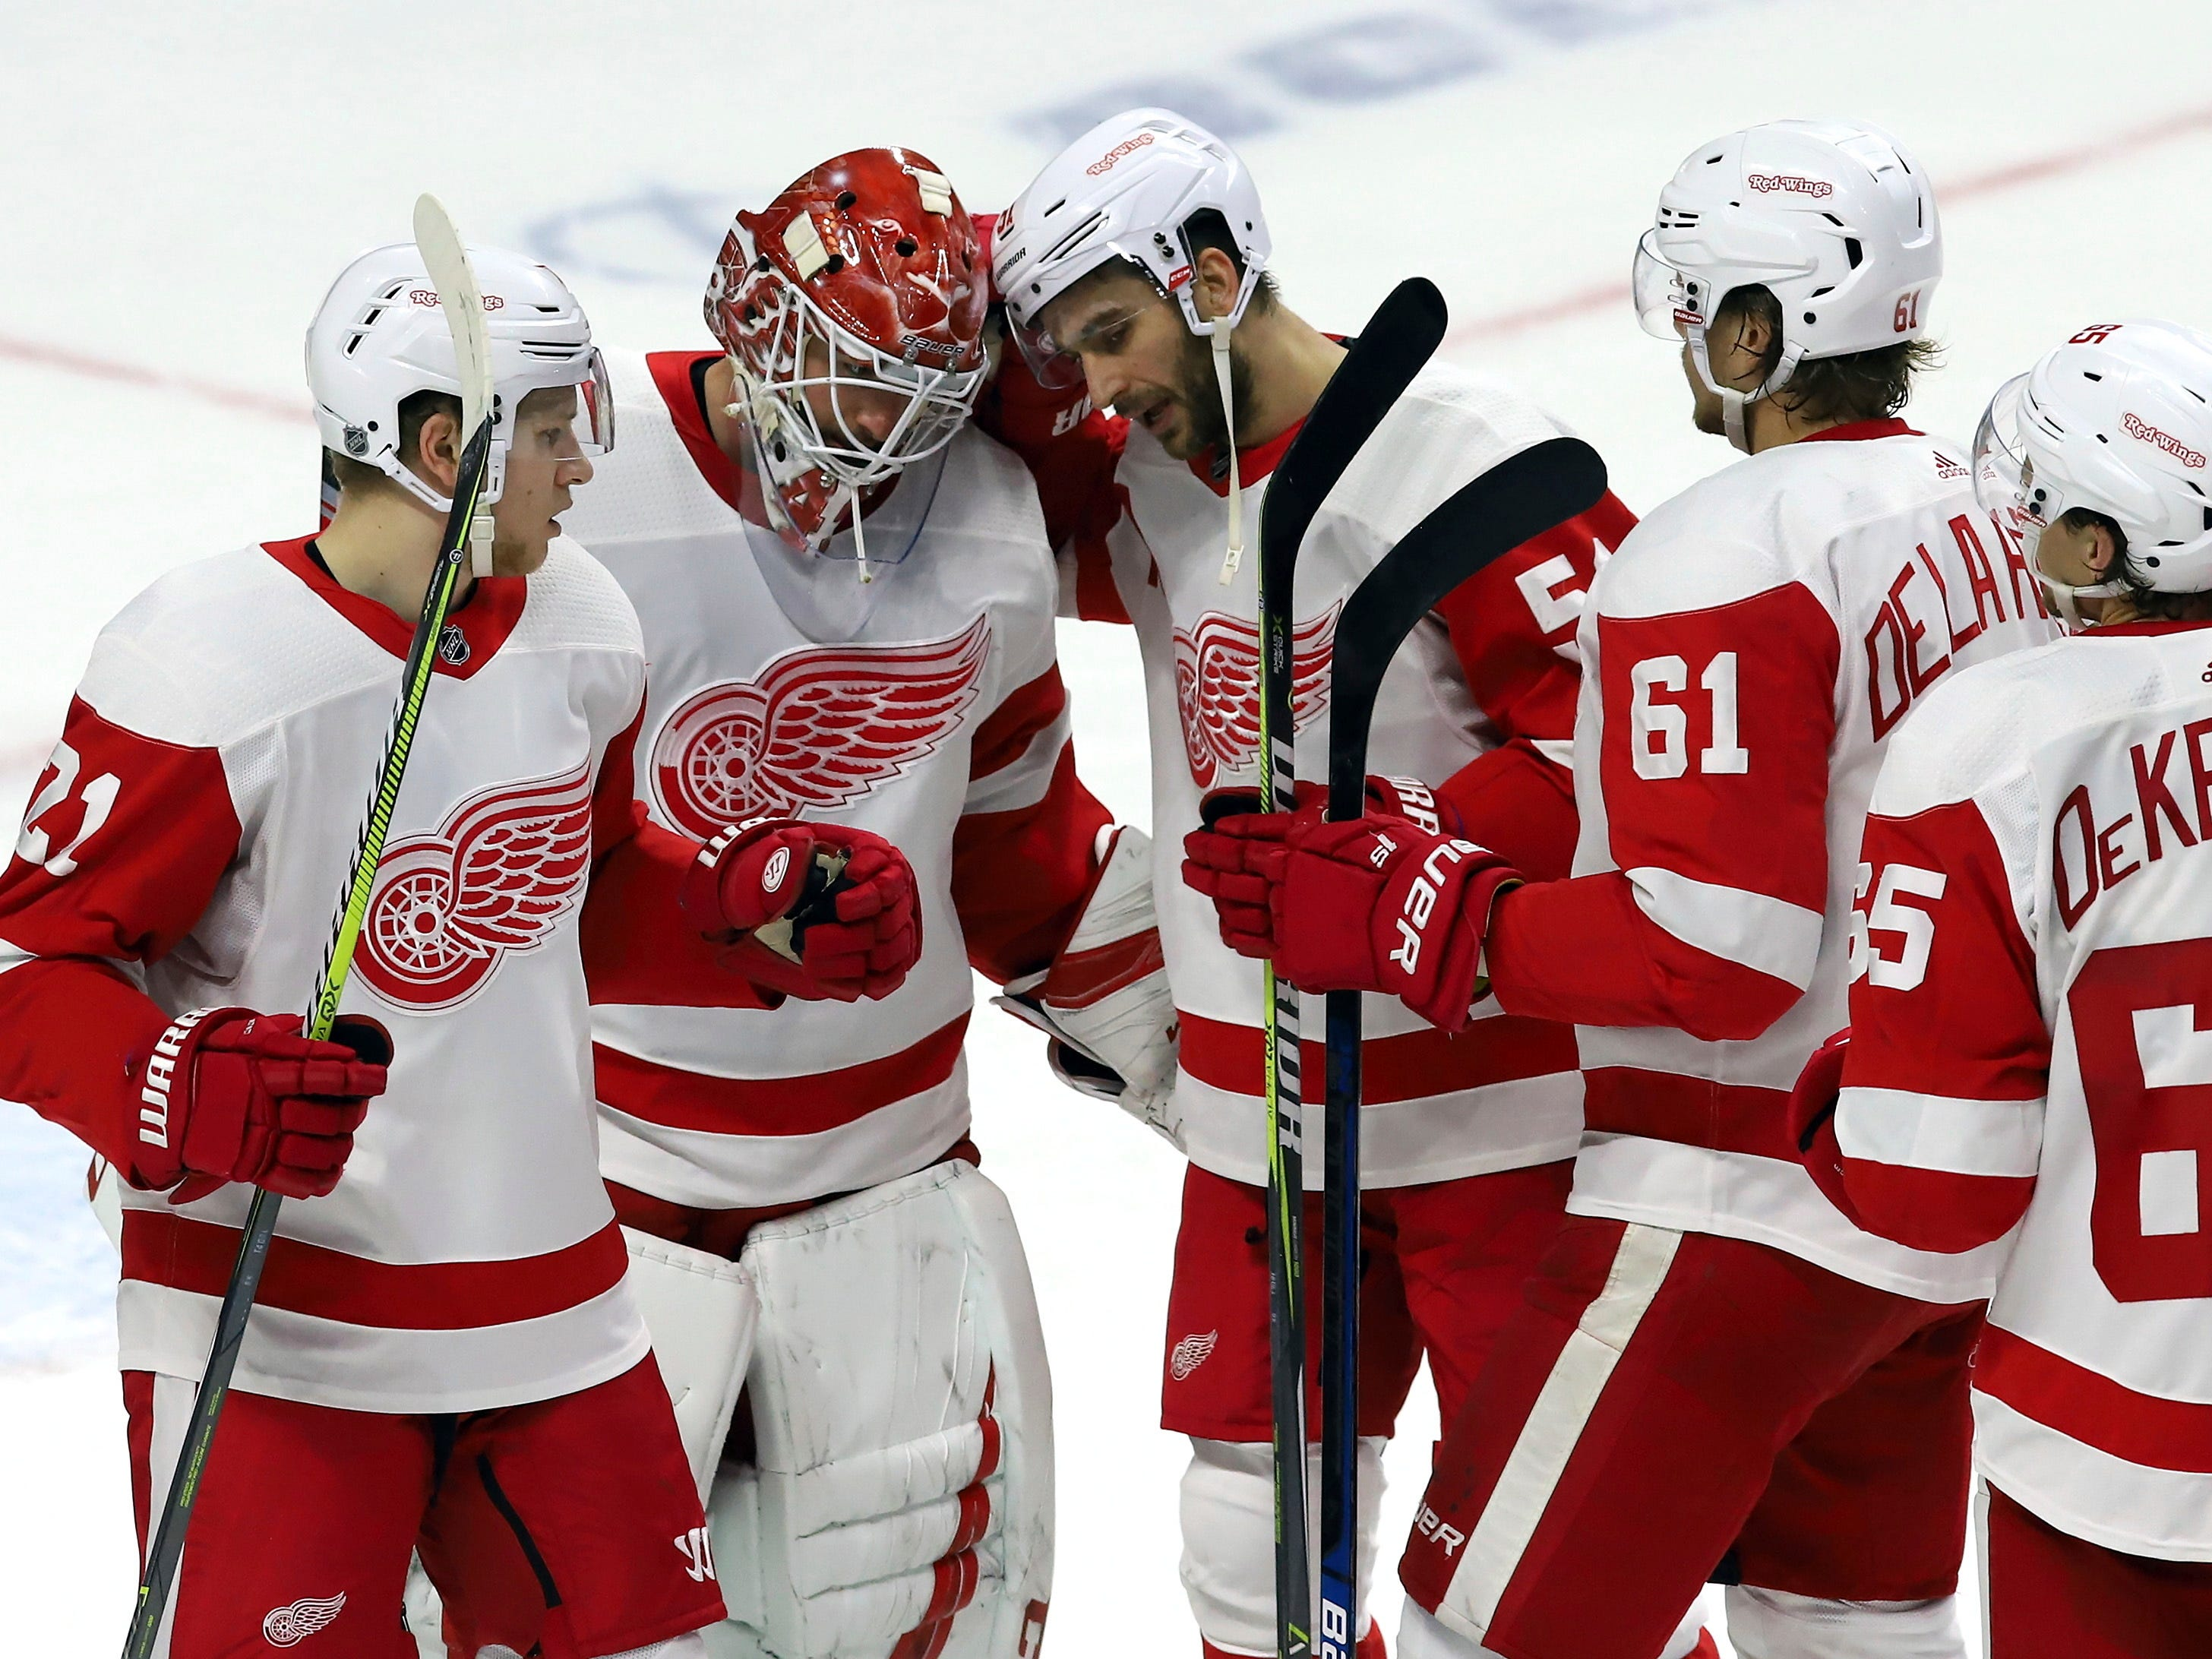 Detroit Red Wings goaltender Jonathan Bernier (45) celebrates with teammates Denis Cholowski (21), Frans Nielsen (51) Jacob de la Rose (61) and Danny DeKeyser (65) after defeating the Ottawa Senators.